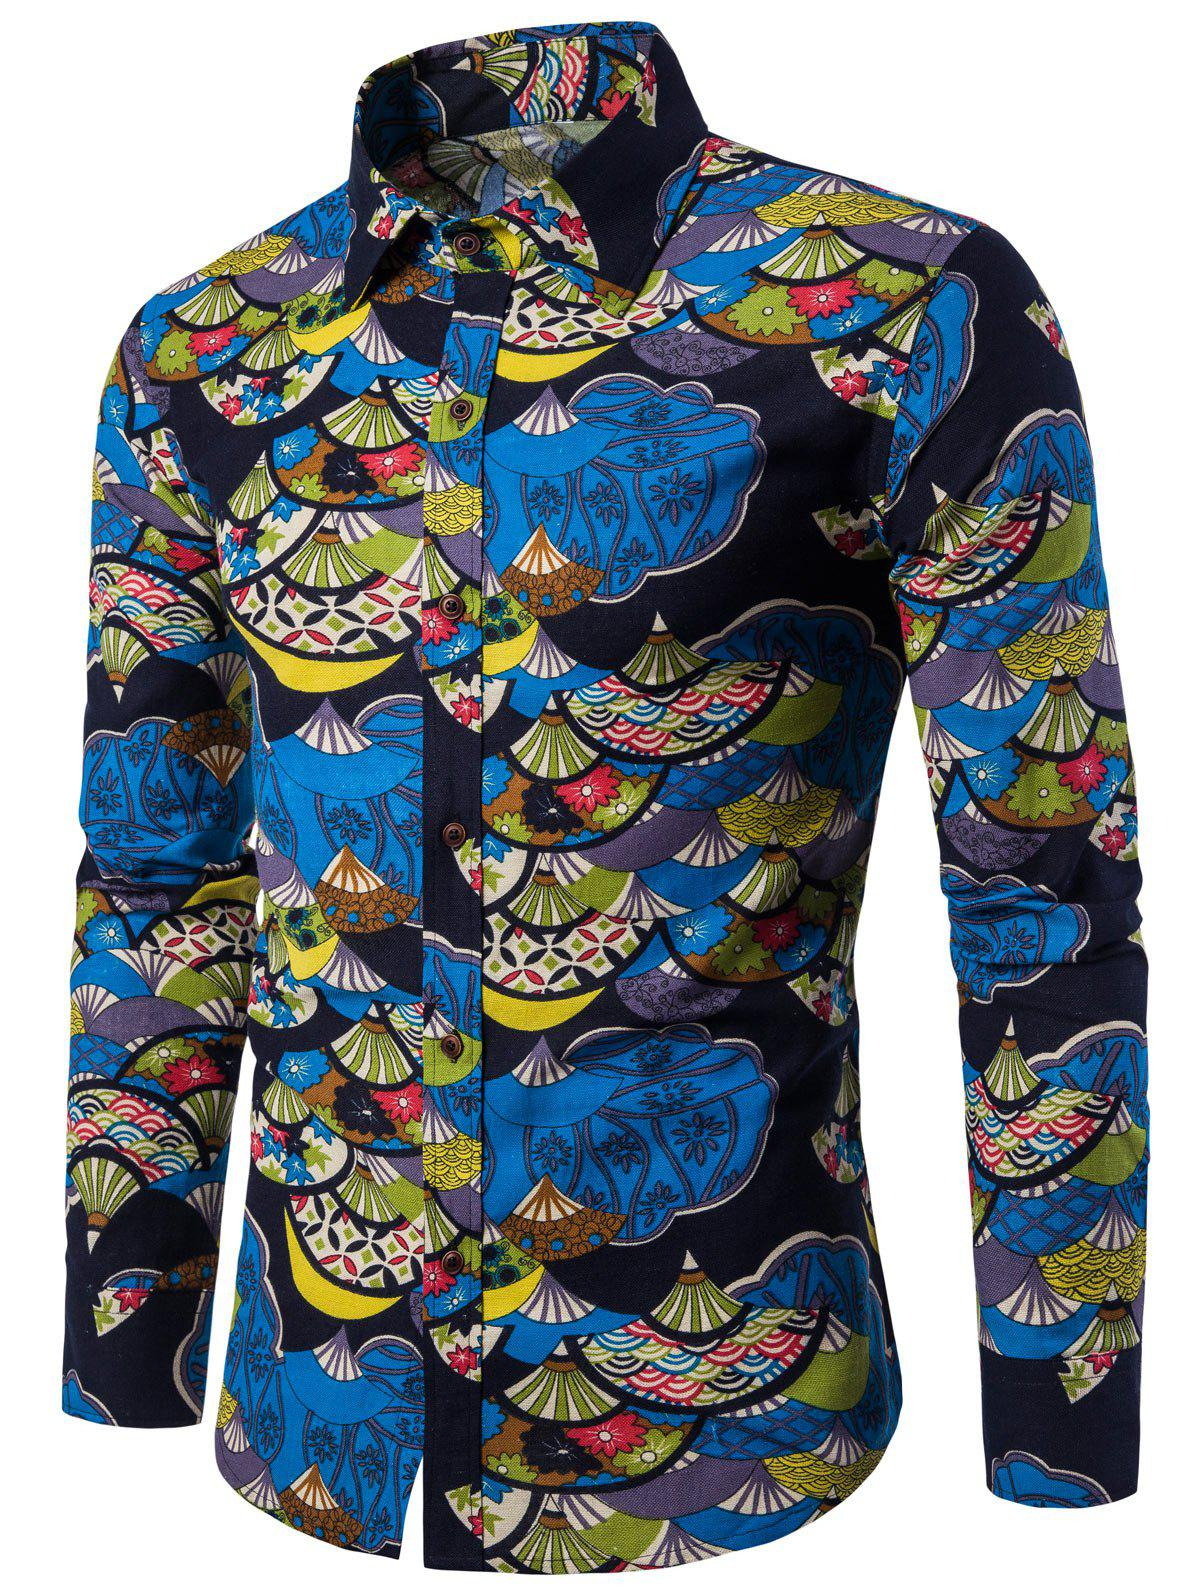 Buy Chinese Fan Printed Button Up Shirt